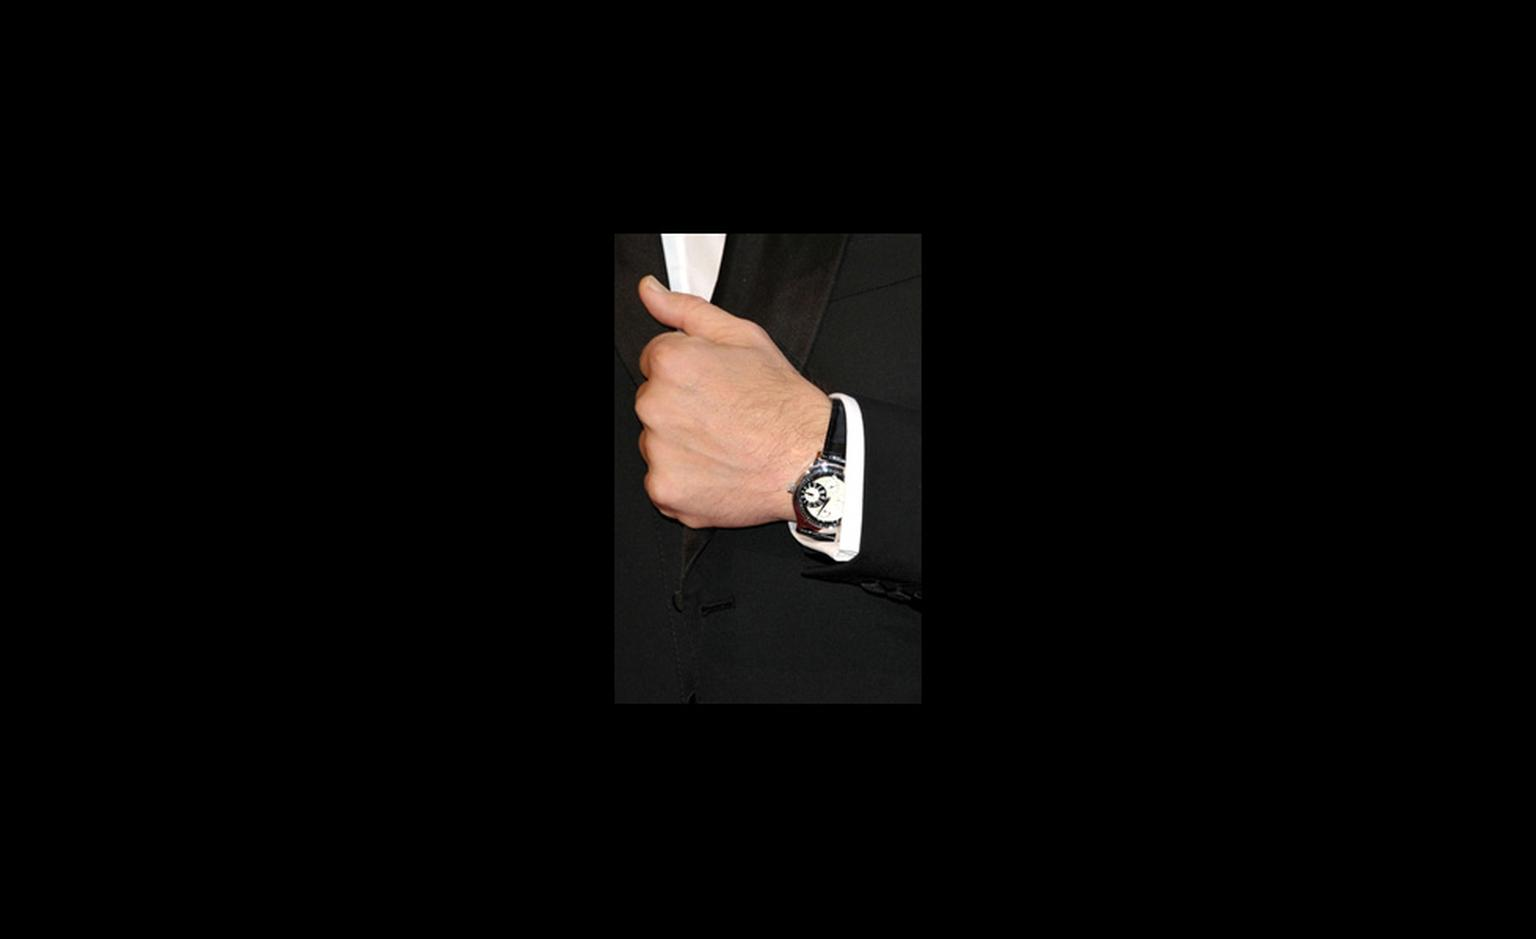 Javier Bardem wears a Chopard L.U.C. Regulateur watch to the Oscars 2011